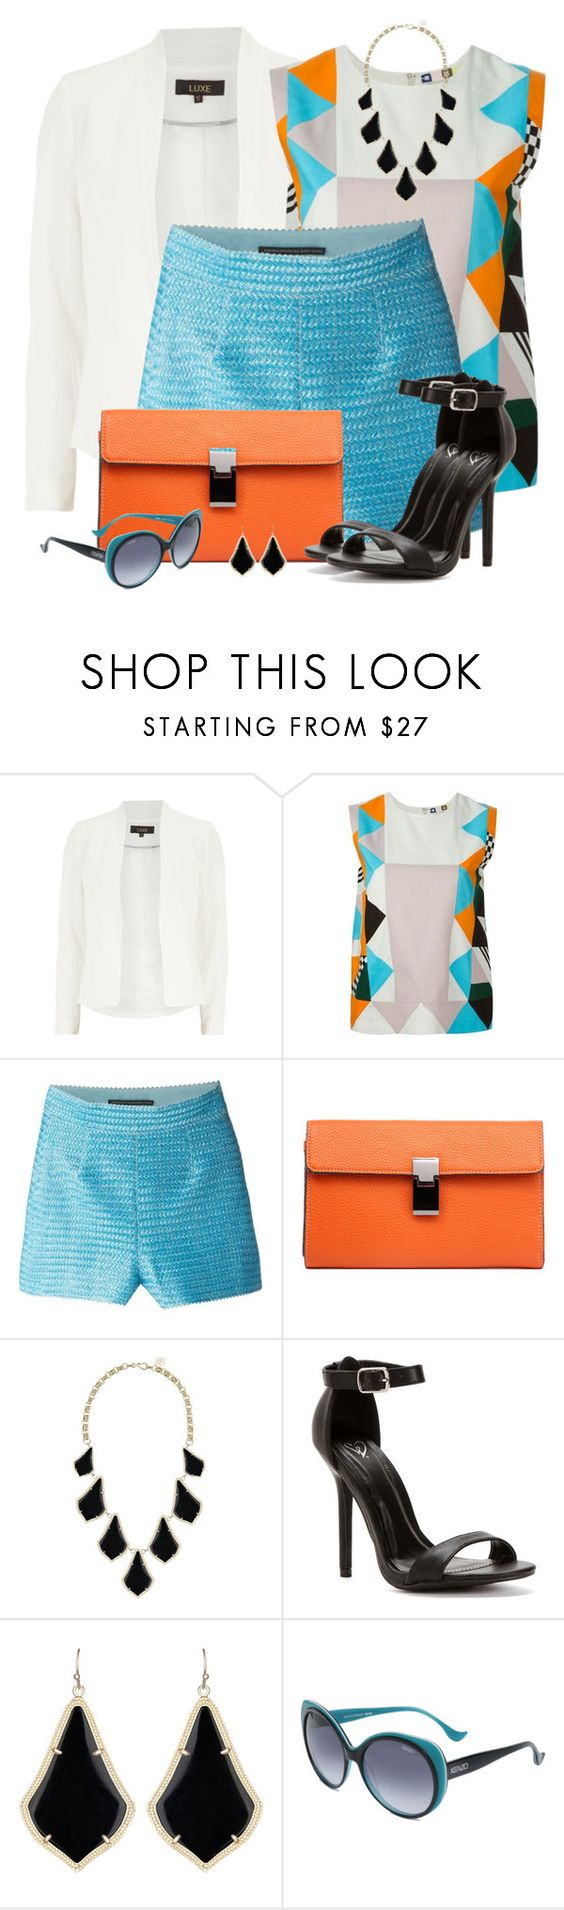 """""""Ermanno Scervino High Waisted Shorts"""" by brendariley-1 ❤ liked on Polyvore featuring Luxe, MSGM, Ermanno Scervino, Kendra Scott and Kenzo"""